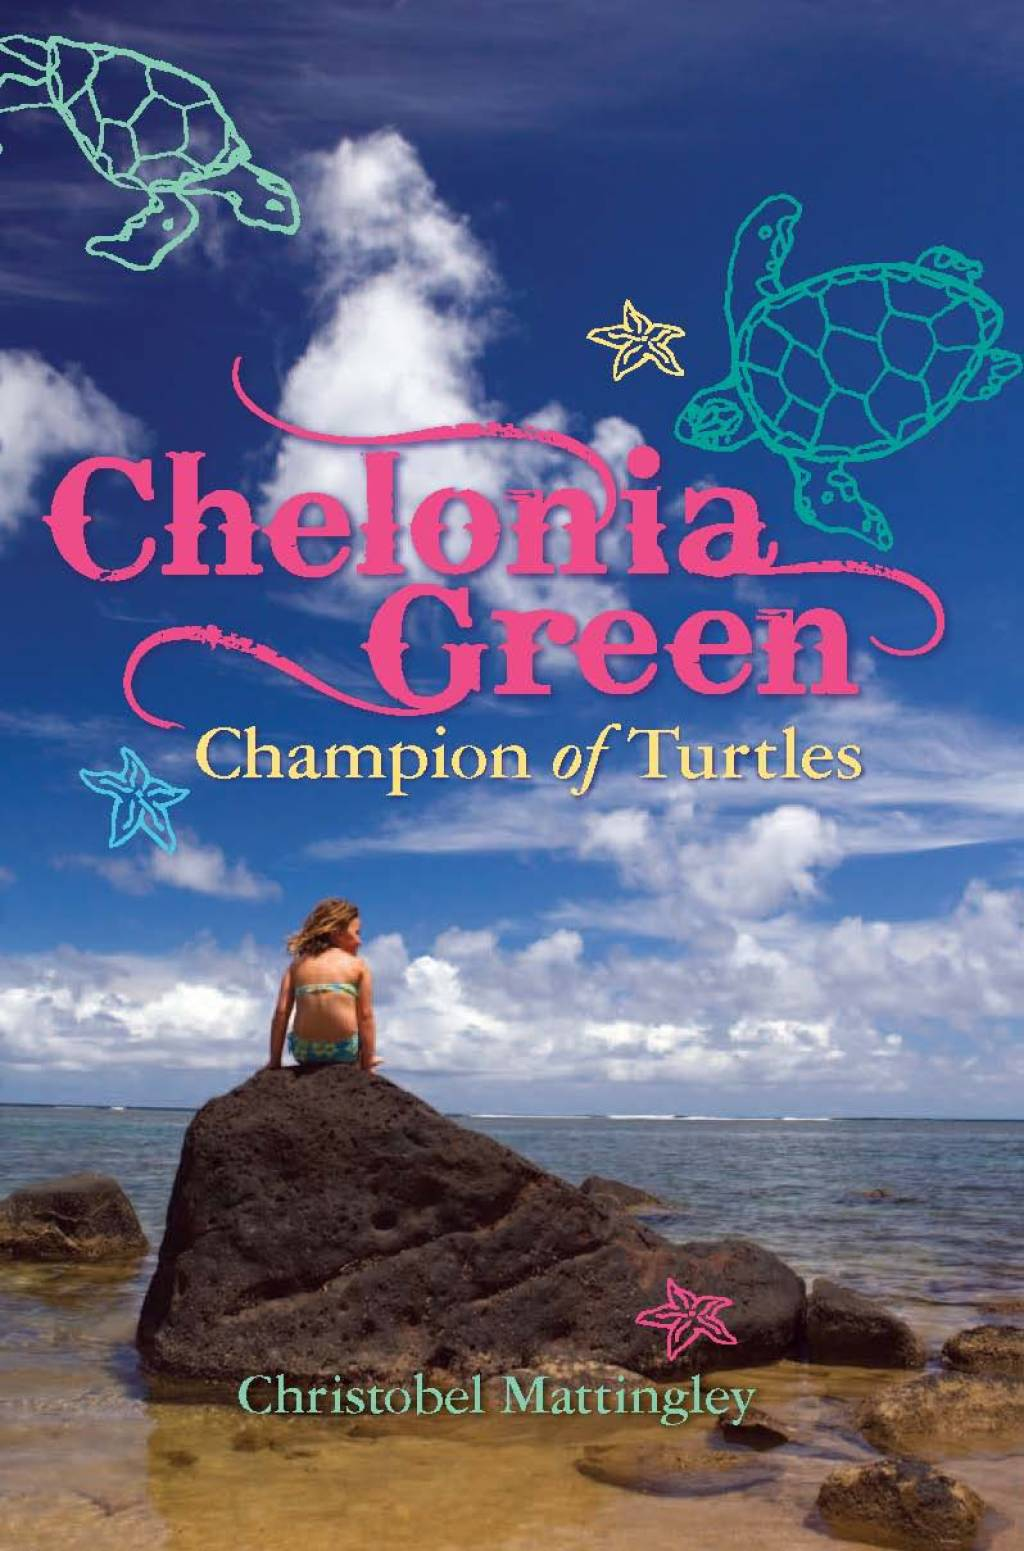 Chelonia Green Champion of Turtles (eBook)